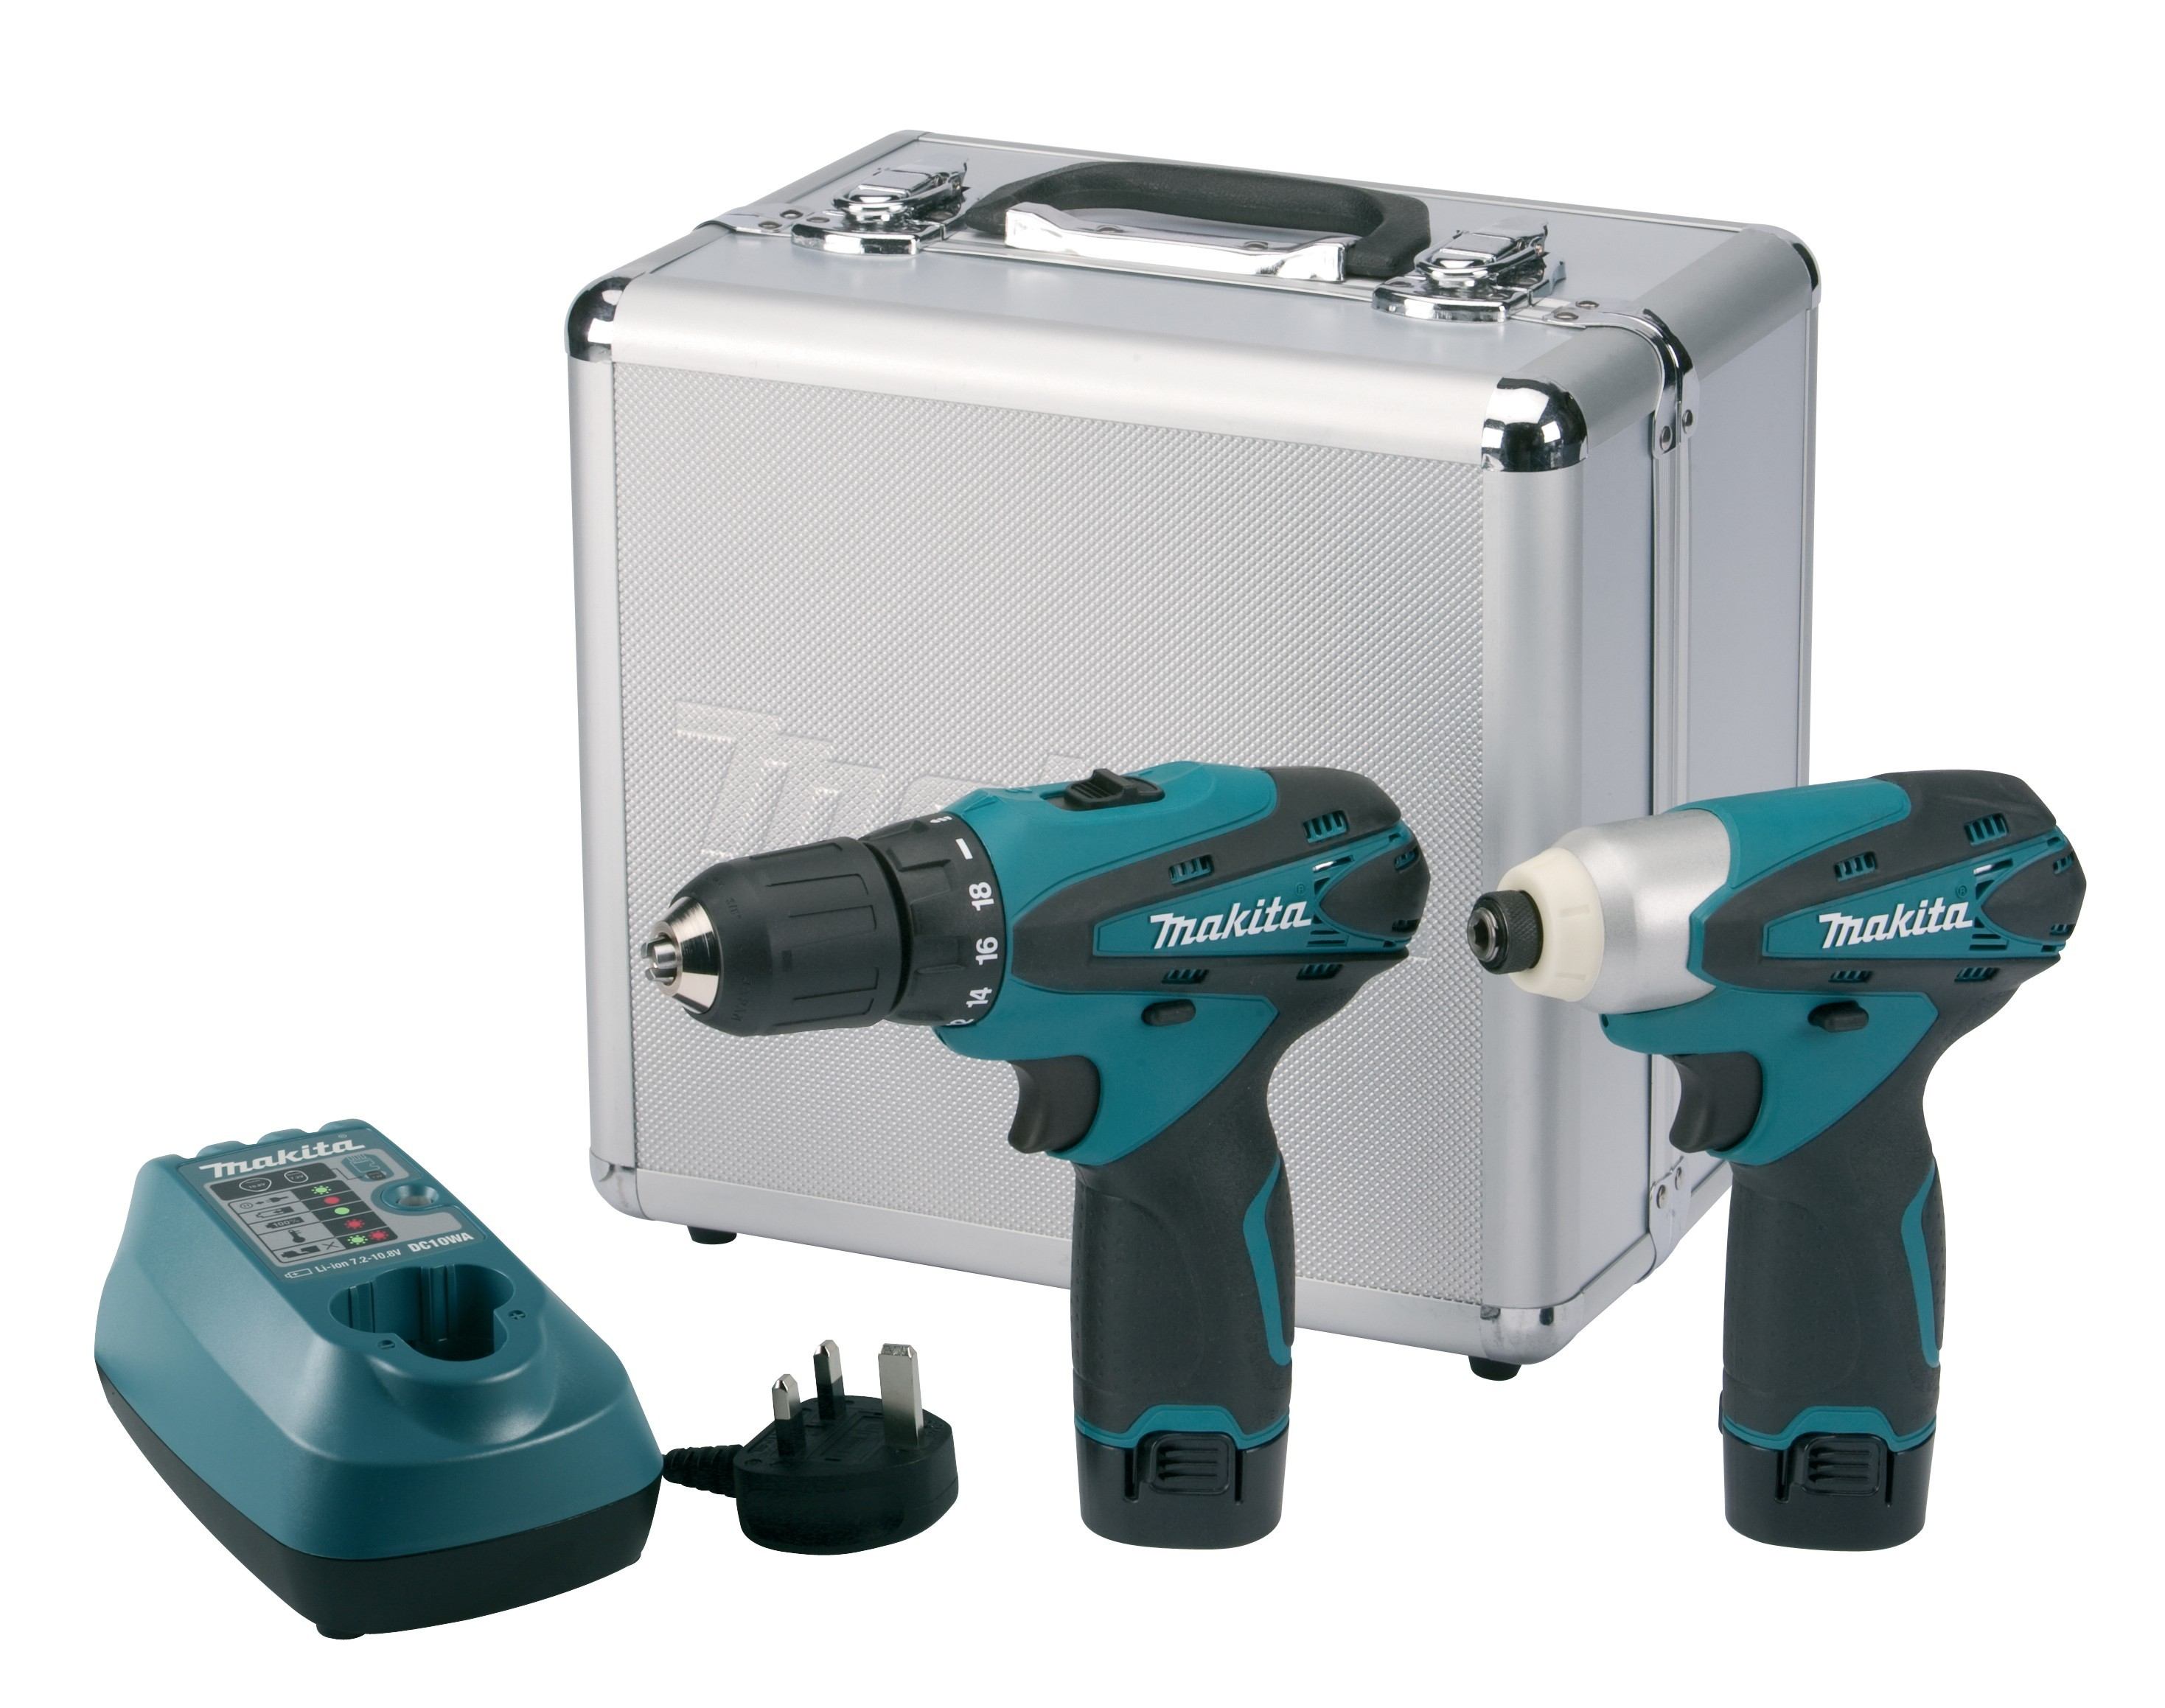 Makita Drill Set LCT204 10.8v LXT Twin Pack Drill Driver/Impact Driver